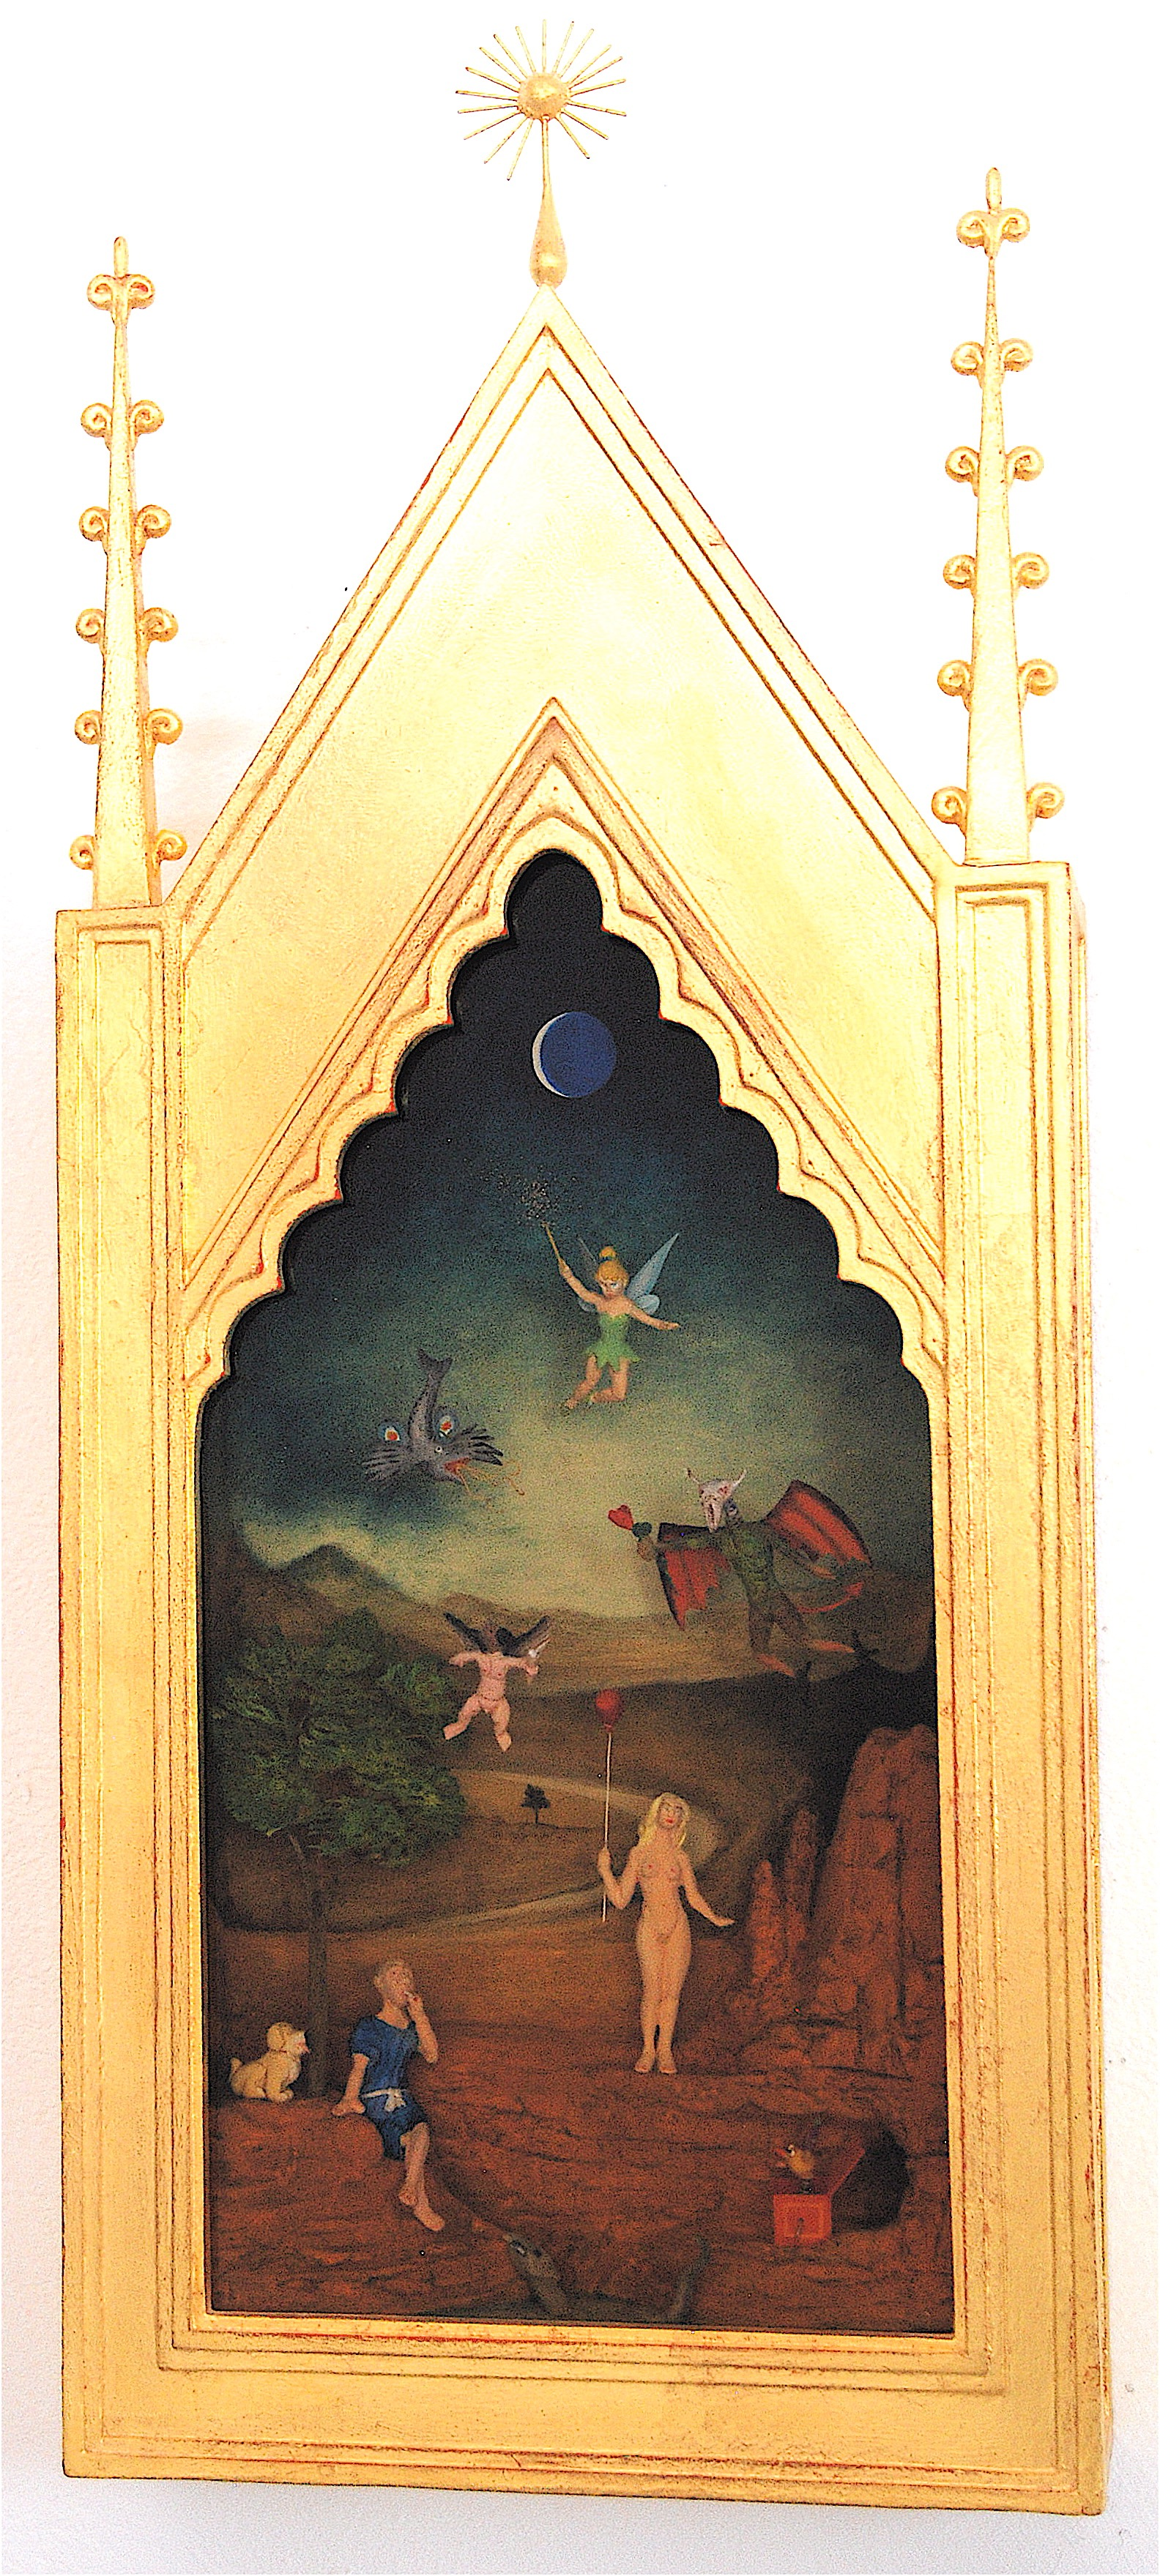 """Thomas Coffin - The Temptation of Saint Anthony, 23""""h x 10""""w x 2""""d, mixed media 3-d diorama encased in acrylic resin, handmade wood frame, 23 kt. gold leaf"""